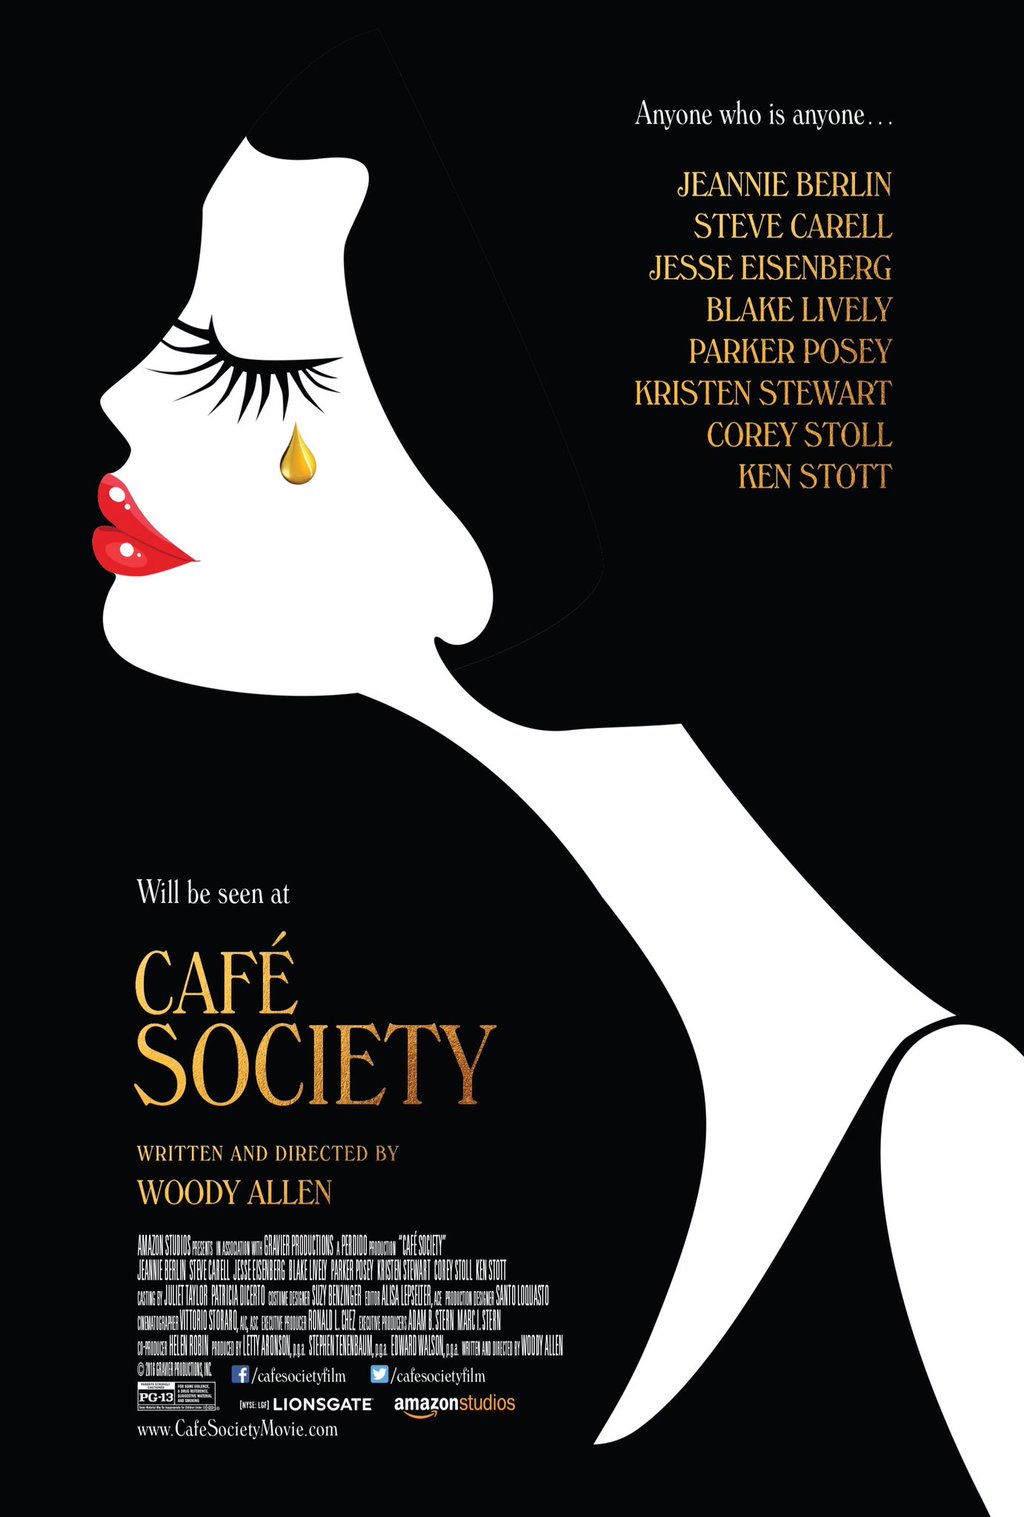 Woody Allen's 'Cafe Society' to Open Seattle International Film Festival